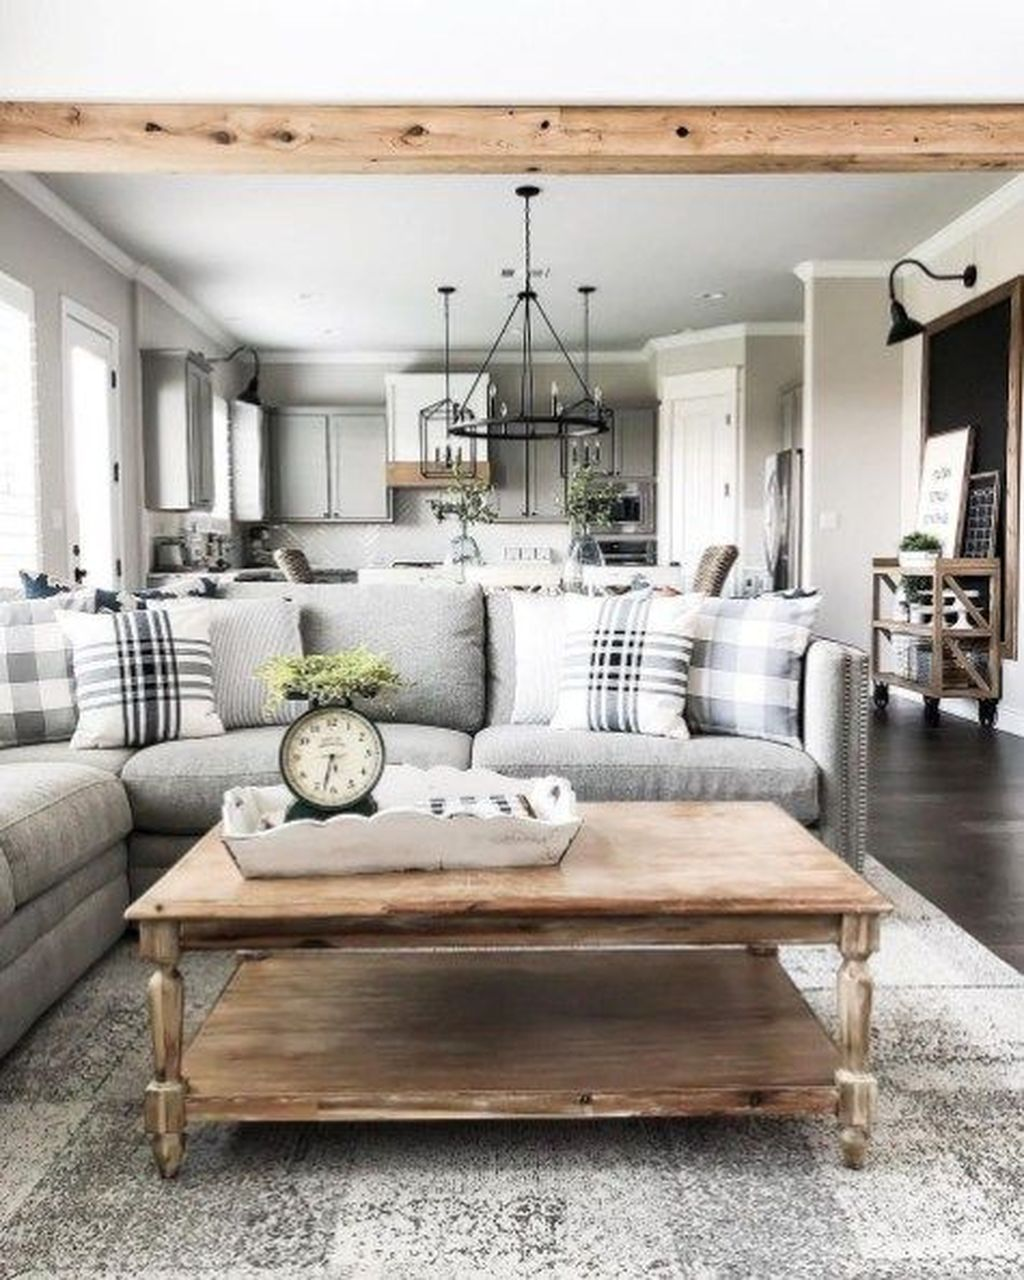 Comfy Farmhouse Living Room Designs To Steal: 39 Comfy Farmhouse Living Room Decor Ideas